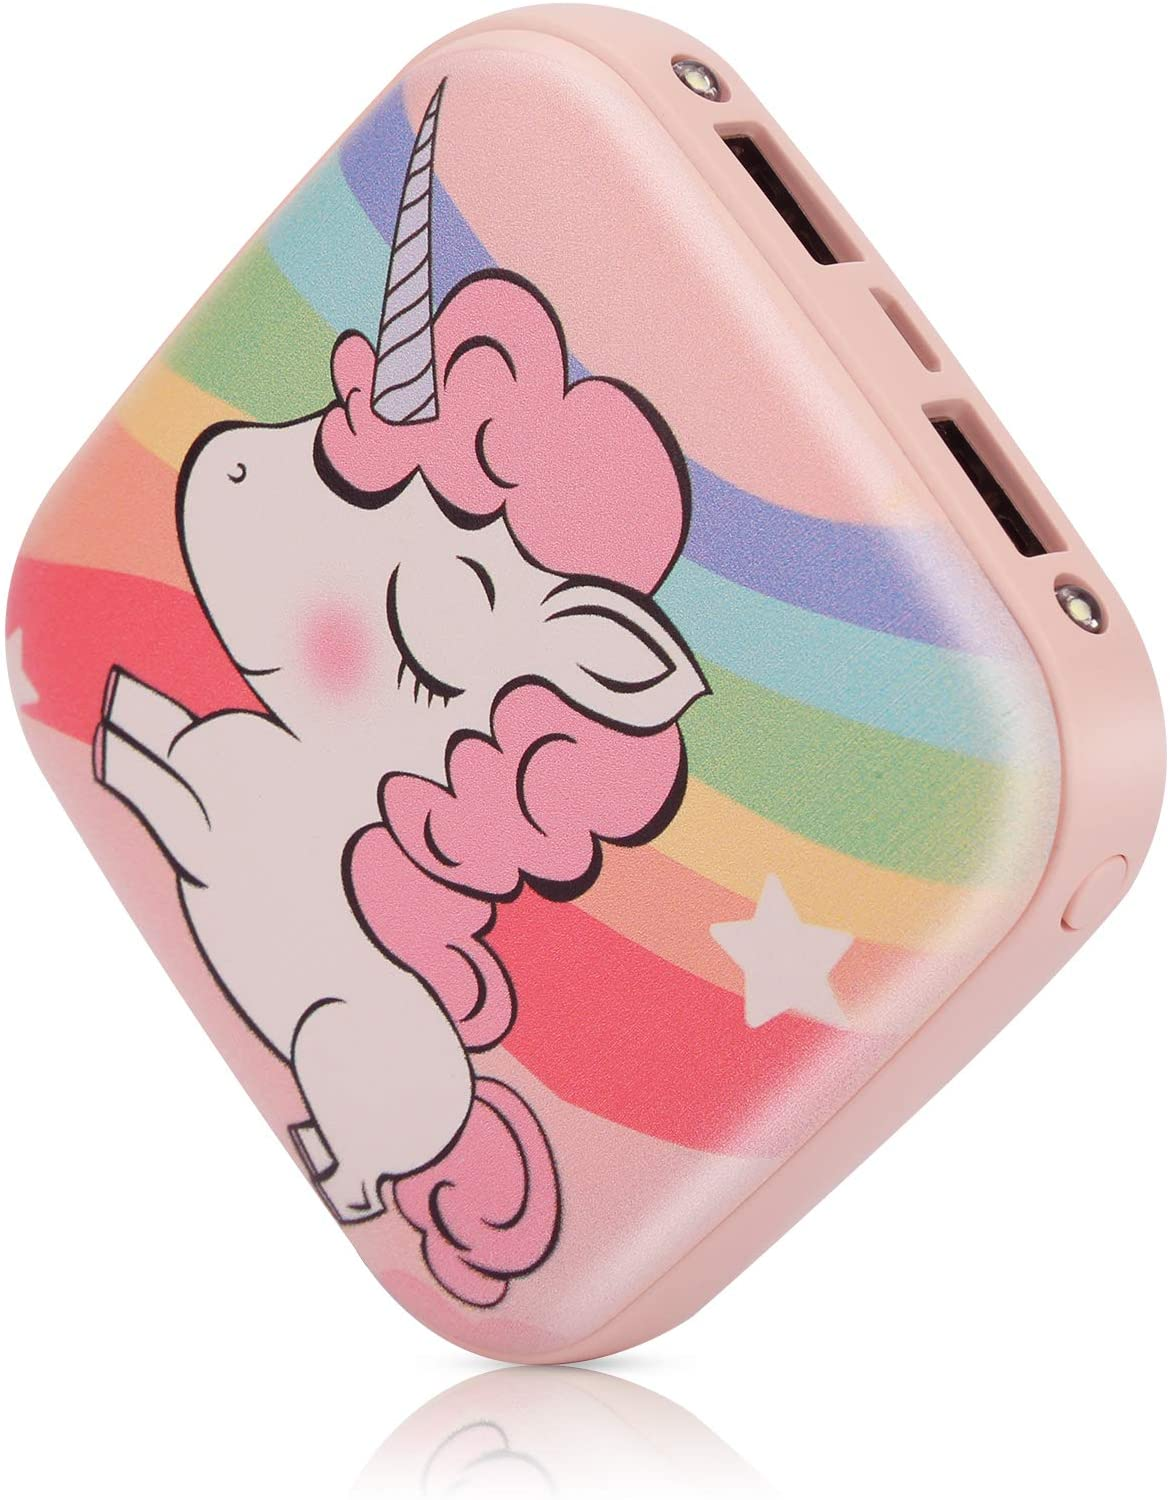 Cute Portable Charger 10000mAh,Sethruki Unicorn Mini Fast Charging Power Bank Gift Girl Women Kid External Battery Pack with Dual USB Output for All Smartphone Cellphone Tablet